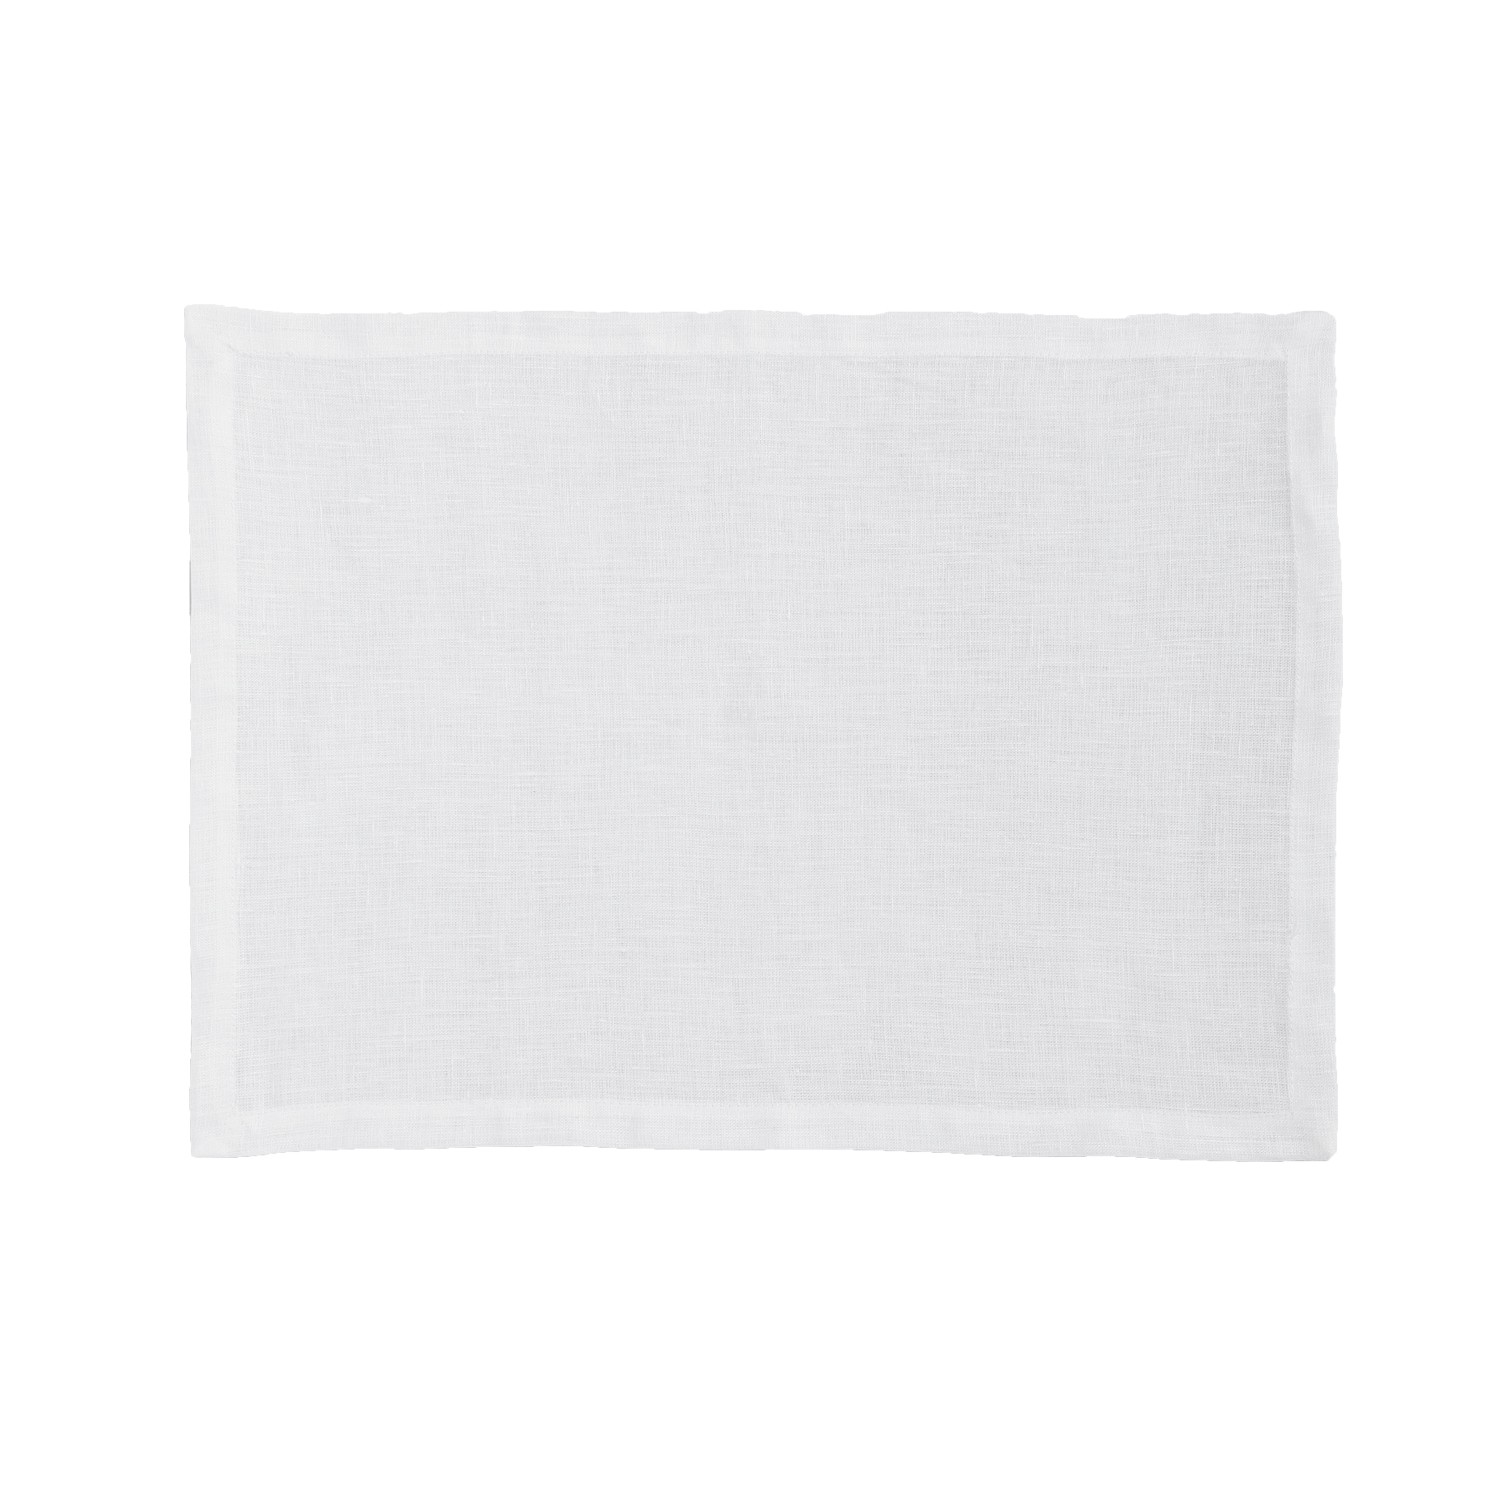 Placemat Cabin | Linnen | White | 50 x 35 cm